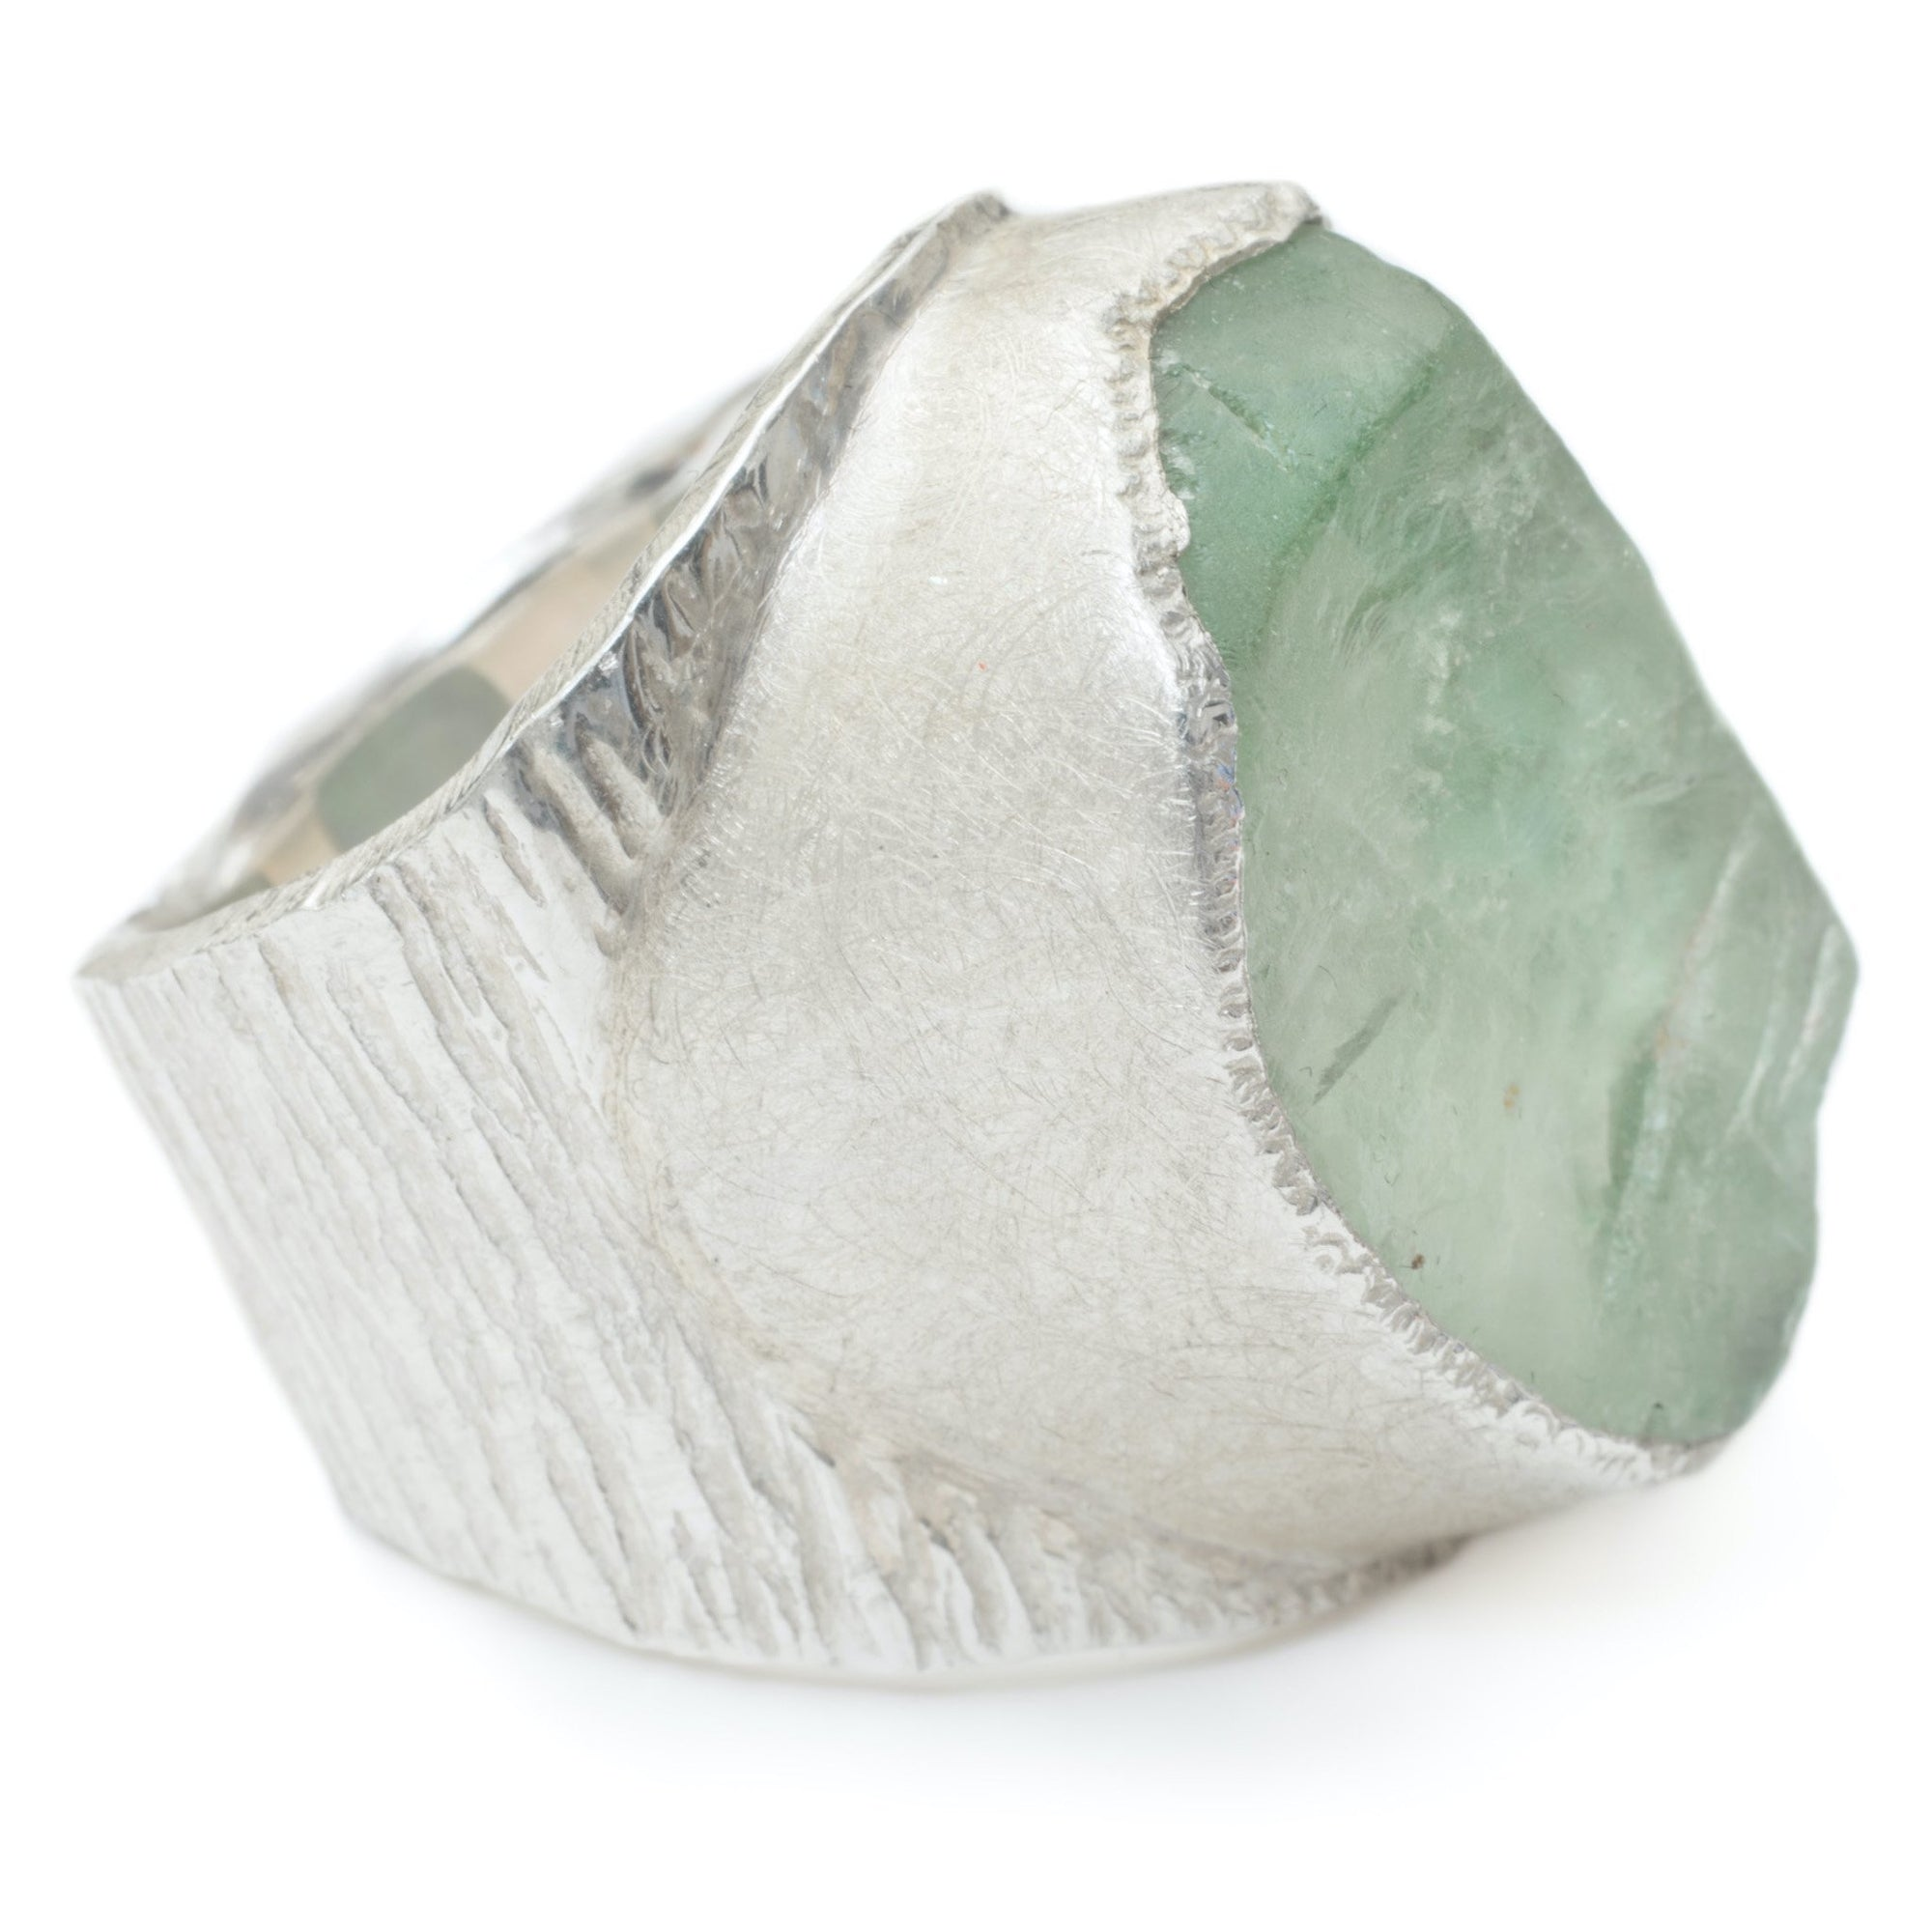 'Genesis' Green Fluorite Macho Ring - Large Stone